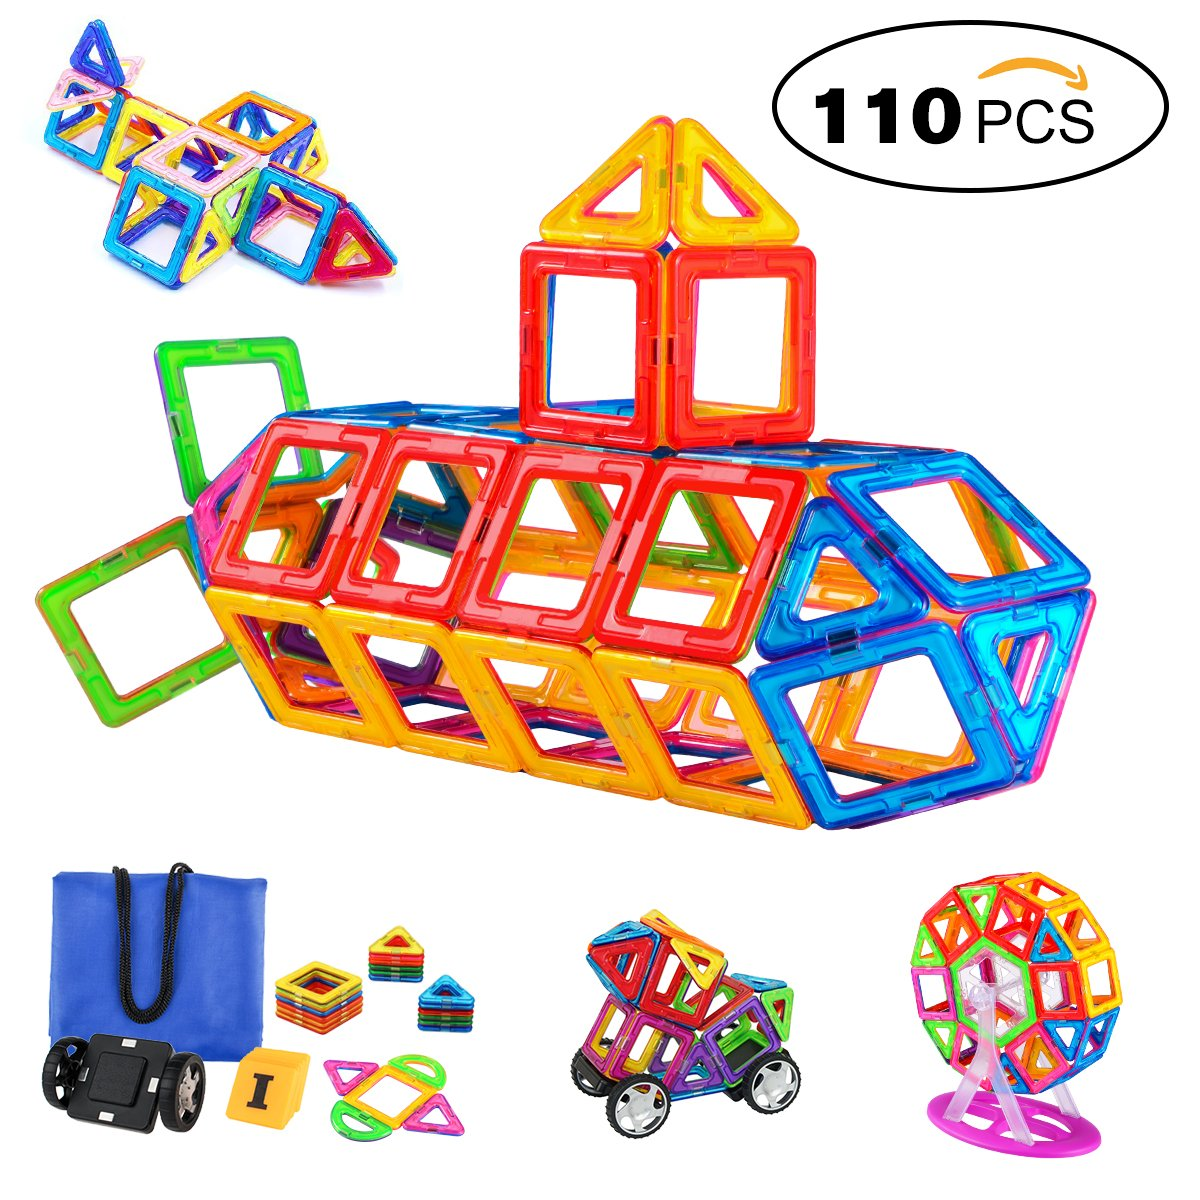 Magnetic Blocks 110 PCS, Magnetic Building Blocks Set Magnet Tiles Educational Toys for Kids/Toddlers/Children Review